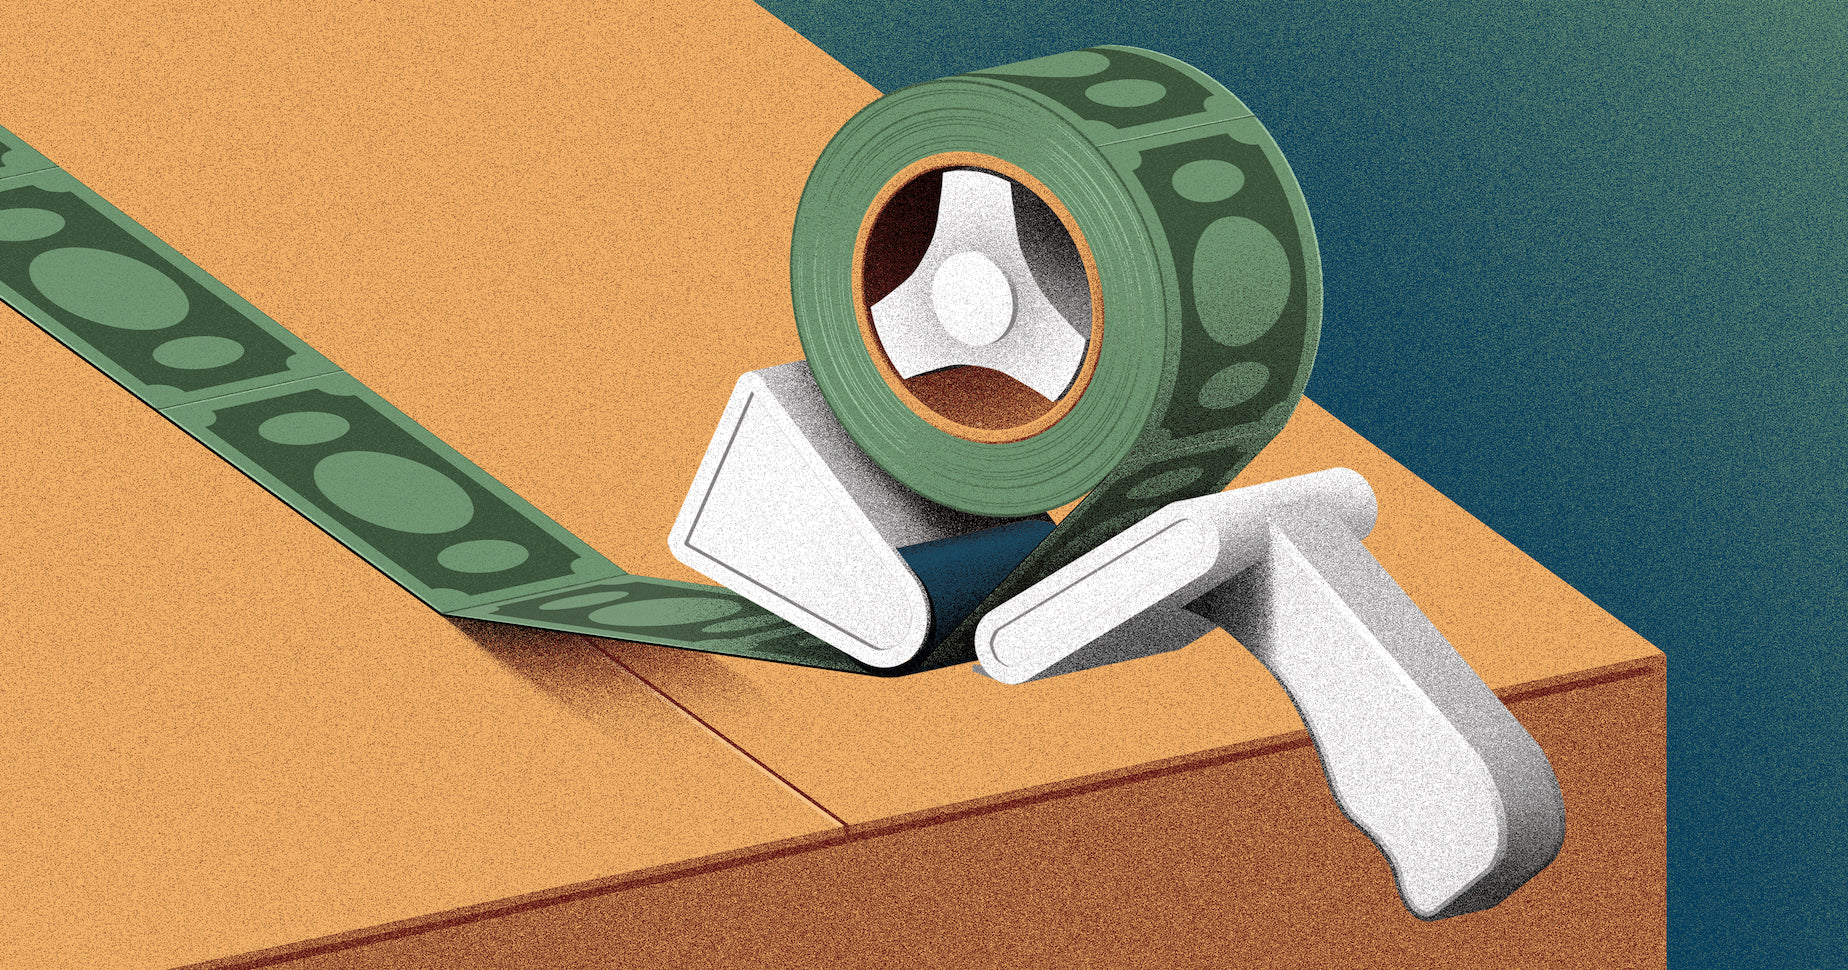 Illustration of tape sealing a box about to be shipped with dollars bills to show that you can save on shipping costs